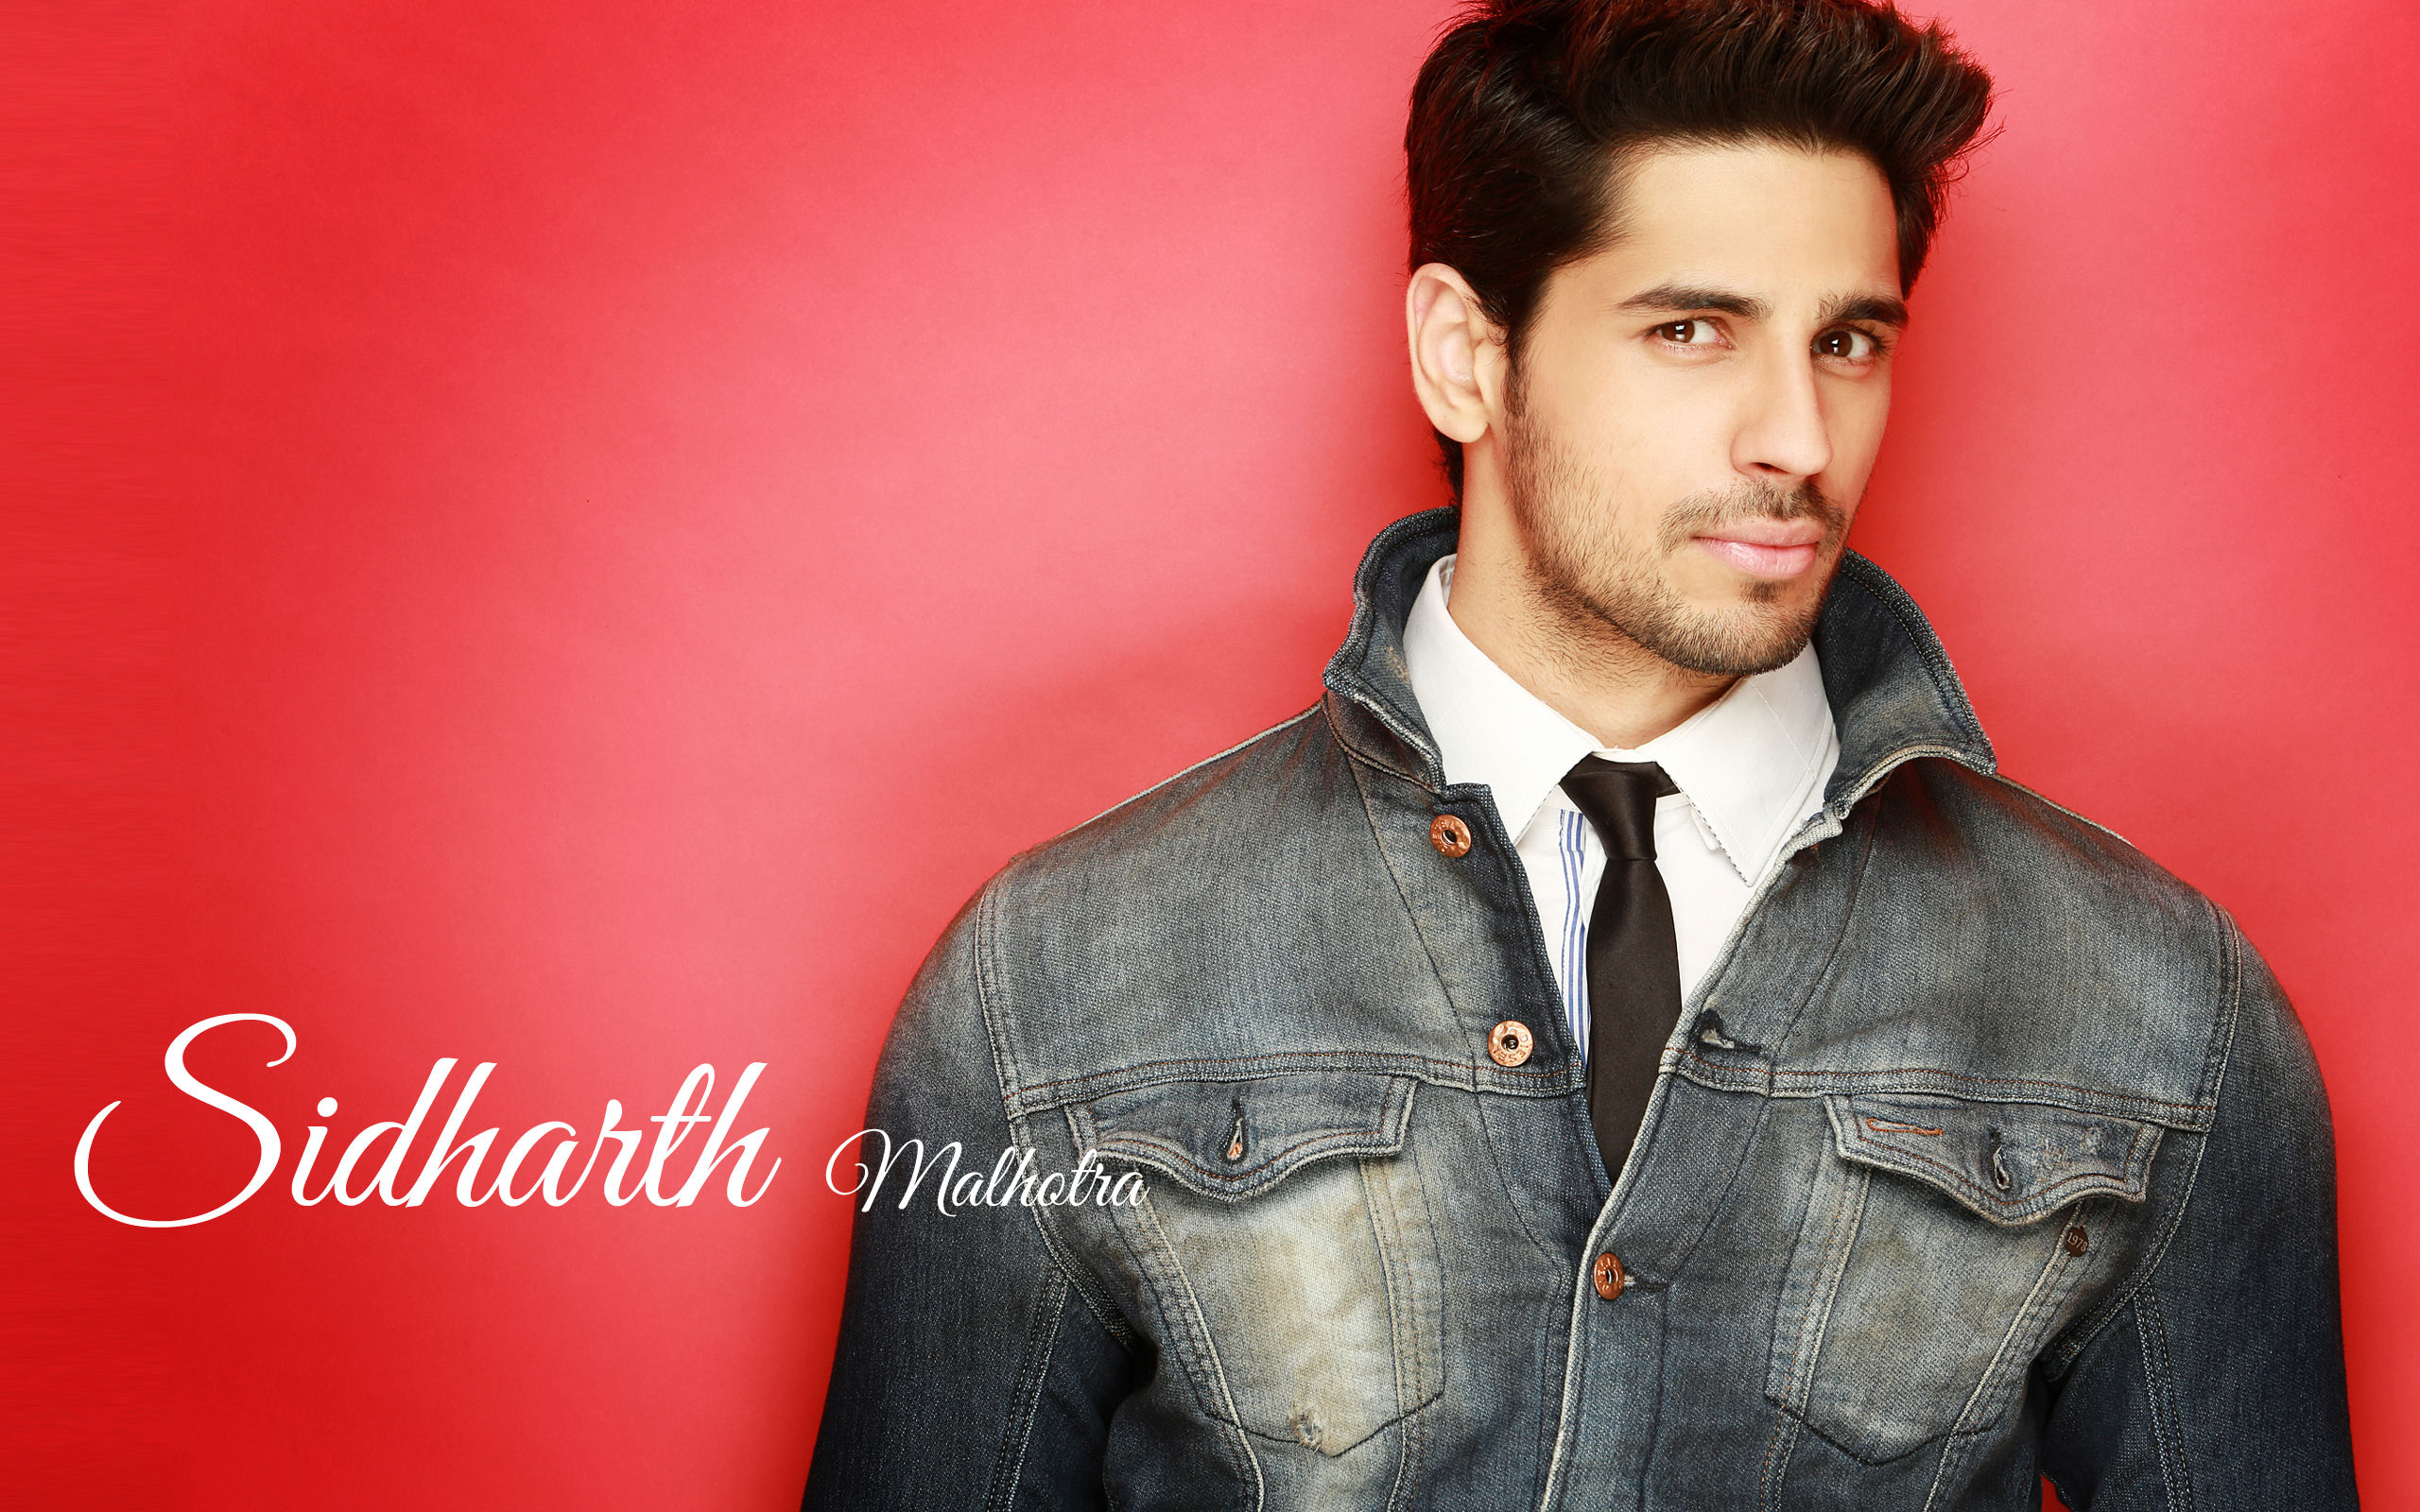 Bollywood Singers Hd Wallpapers Sidharth Malhotra Photos Images Pics Amp Hd Wallpapers